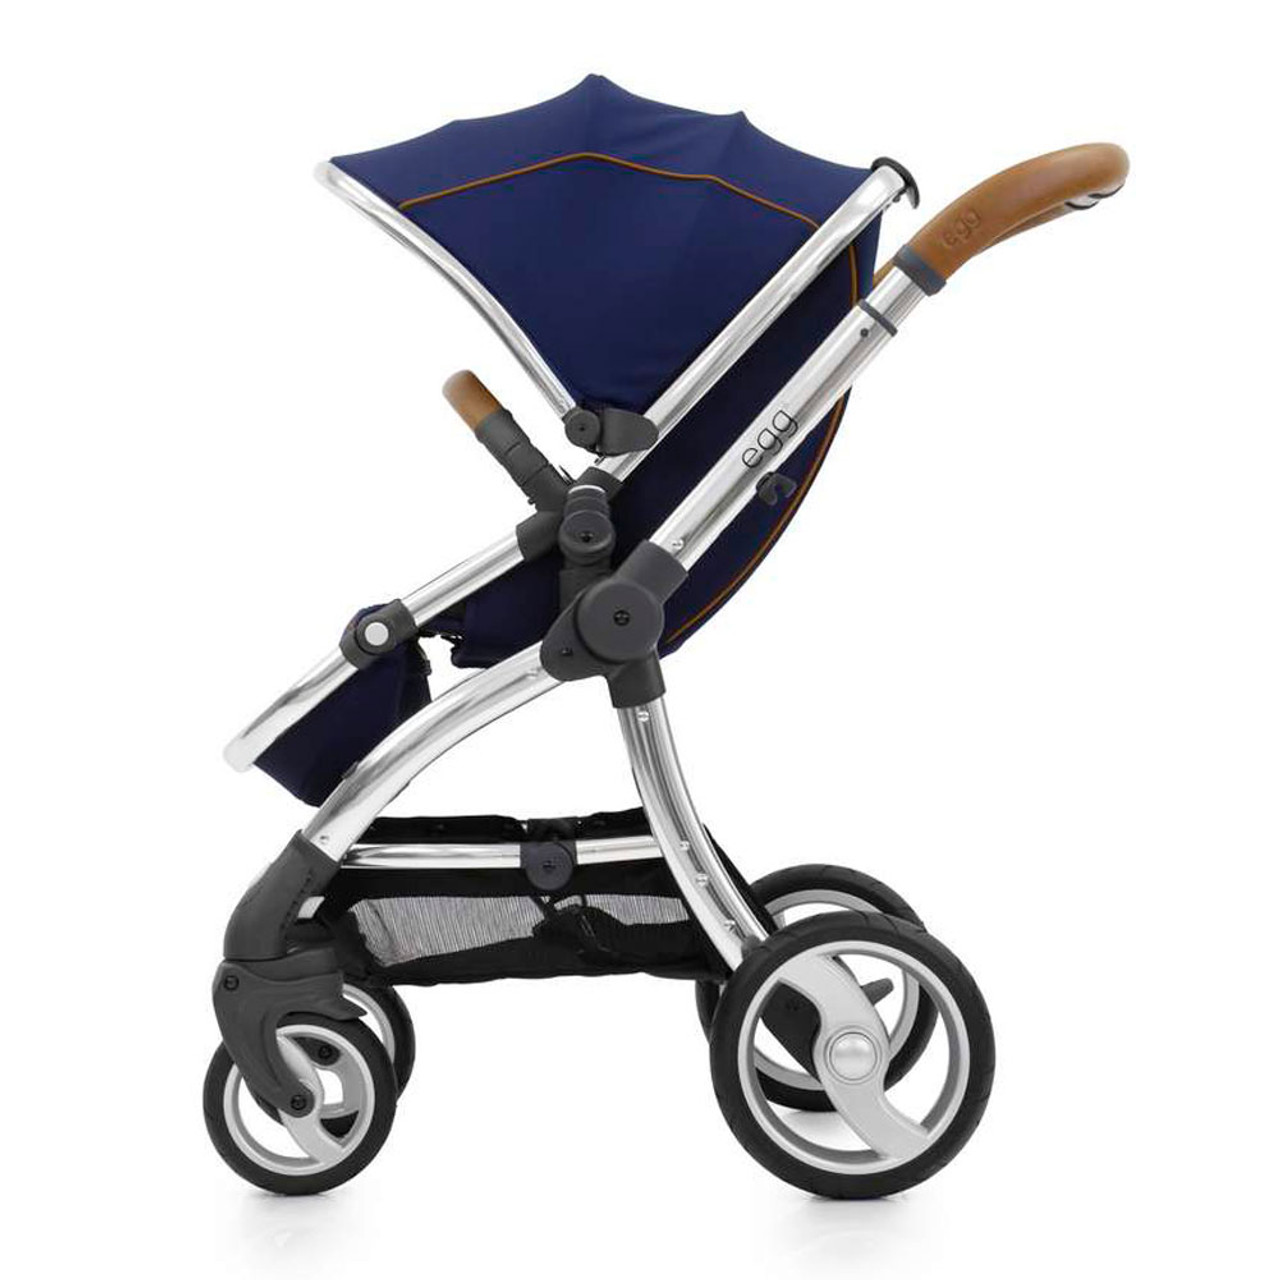 Egg Stroller For Twins The Egg Stroller Regal Navy With Mirror Chassis